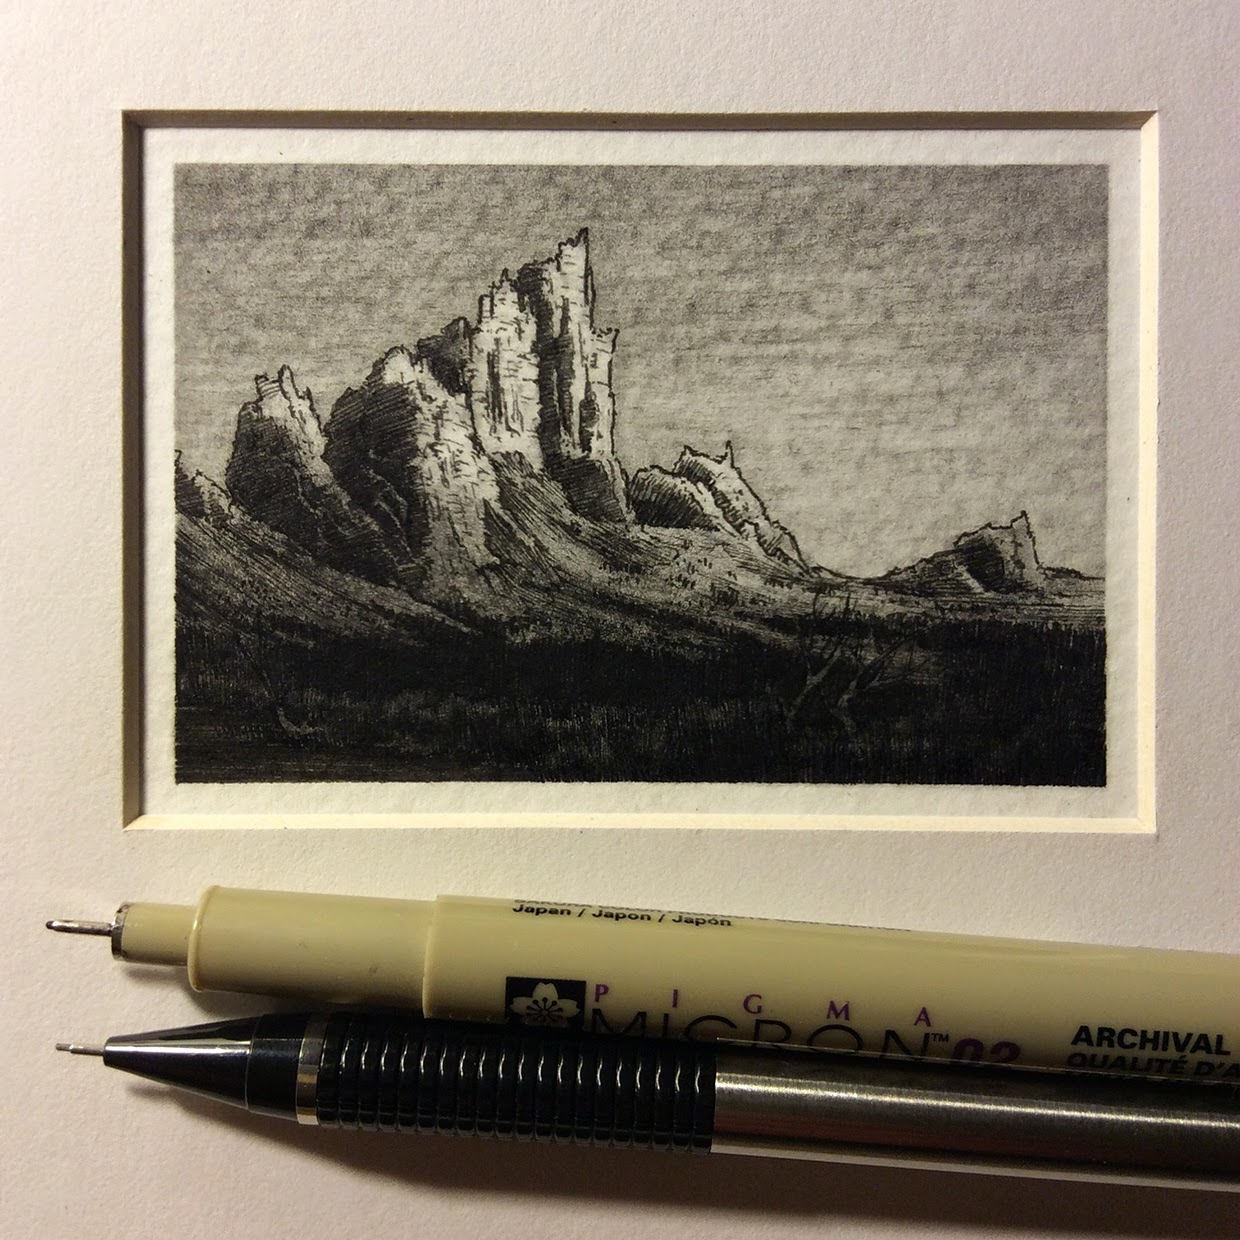 10-Taylor-Mazerhas-Miniature-Pencil-and-Ink-Drawings-with-a-lot-of-Detail-www-designstack-co